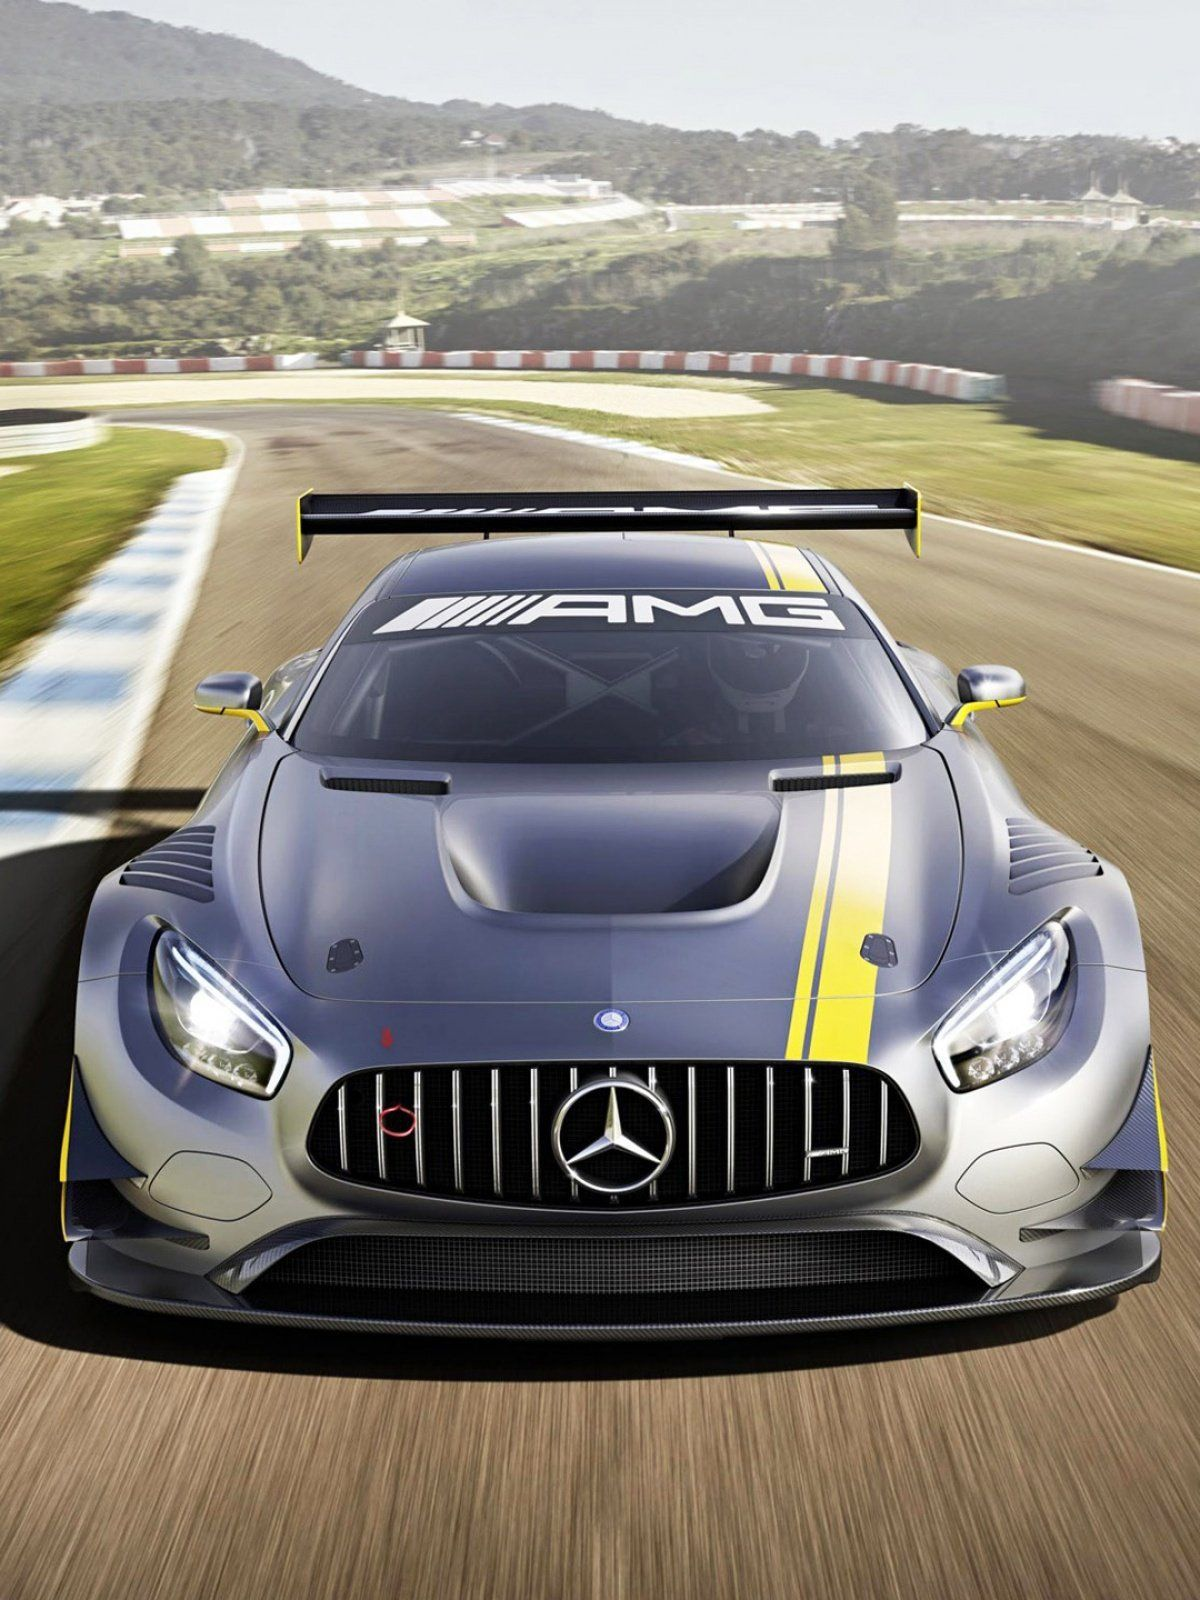 2015 Mercedes Benz Amg Gt3 Racing Car Mobile Wallpaper With